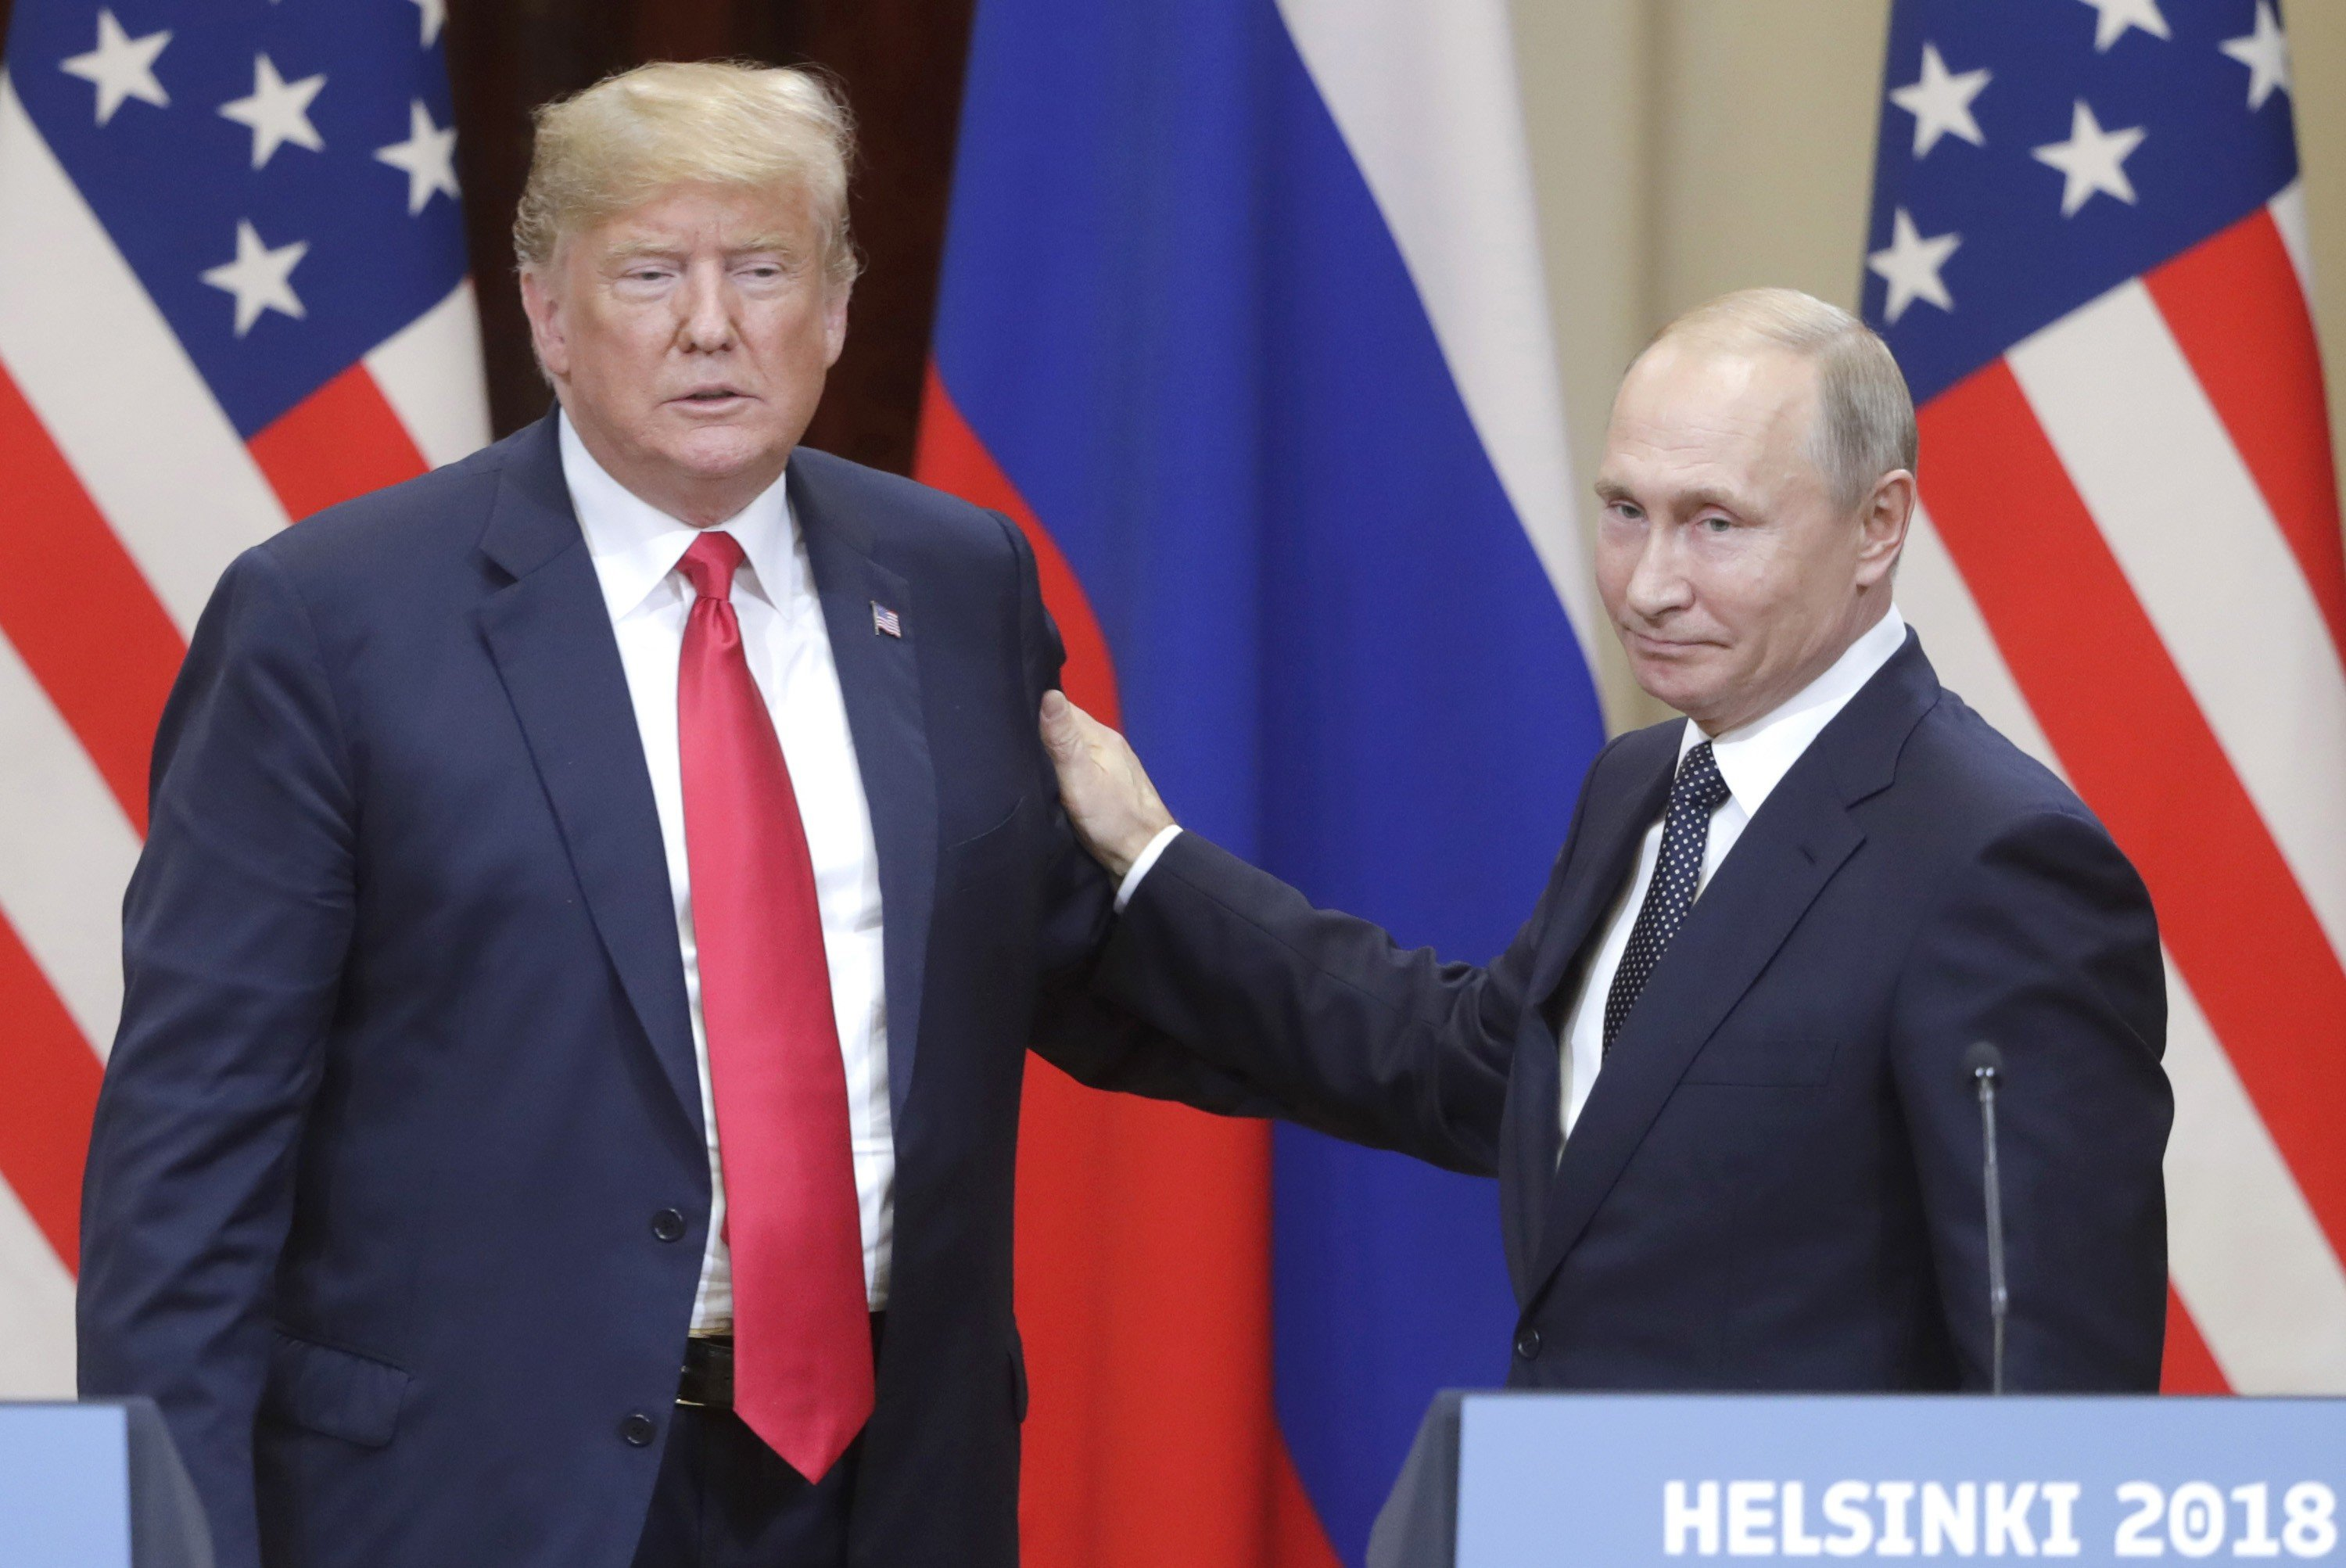 Why Donald Trump S Re Election Would Make Vladimir Putin Very Happy South China Morning Post